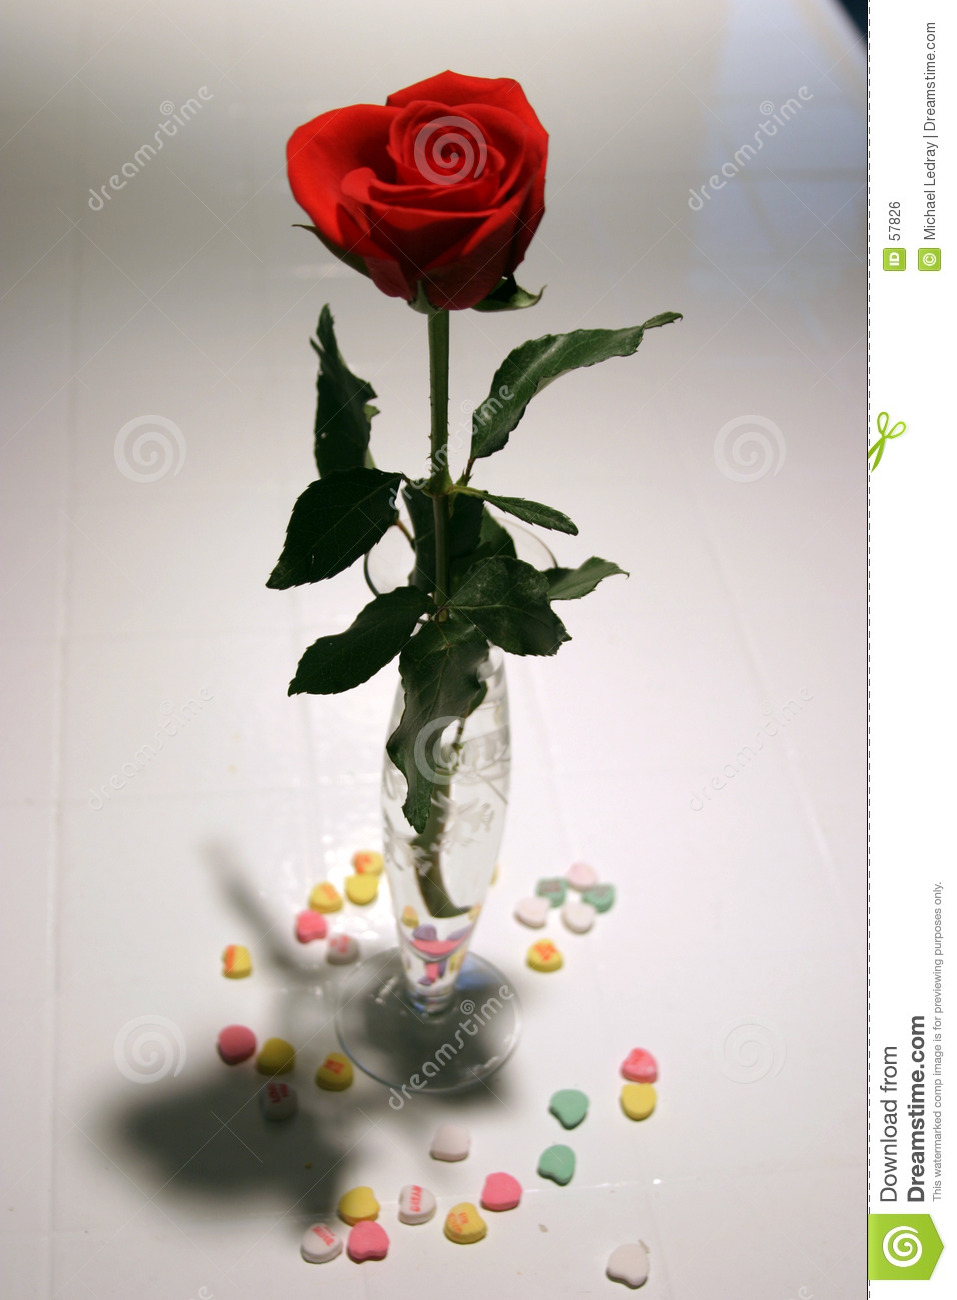 valentine rose royalty free stock image  image, Beautiful flower